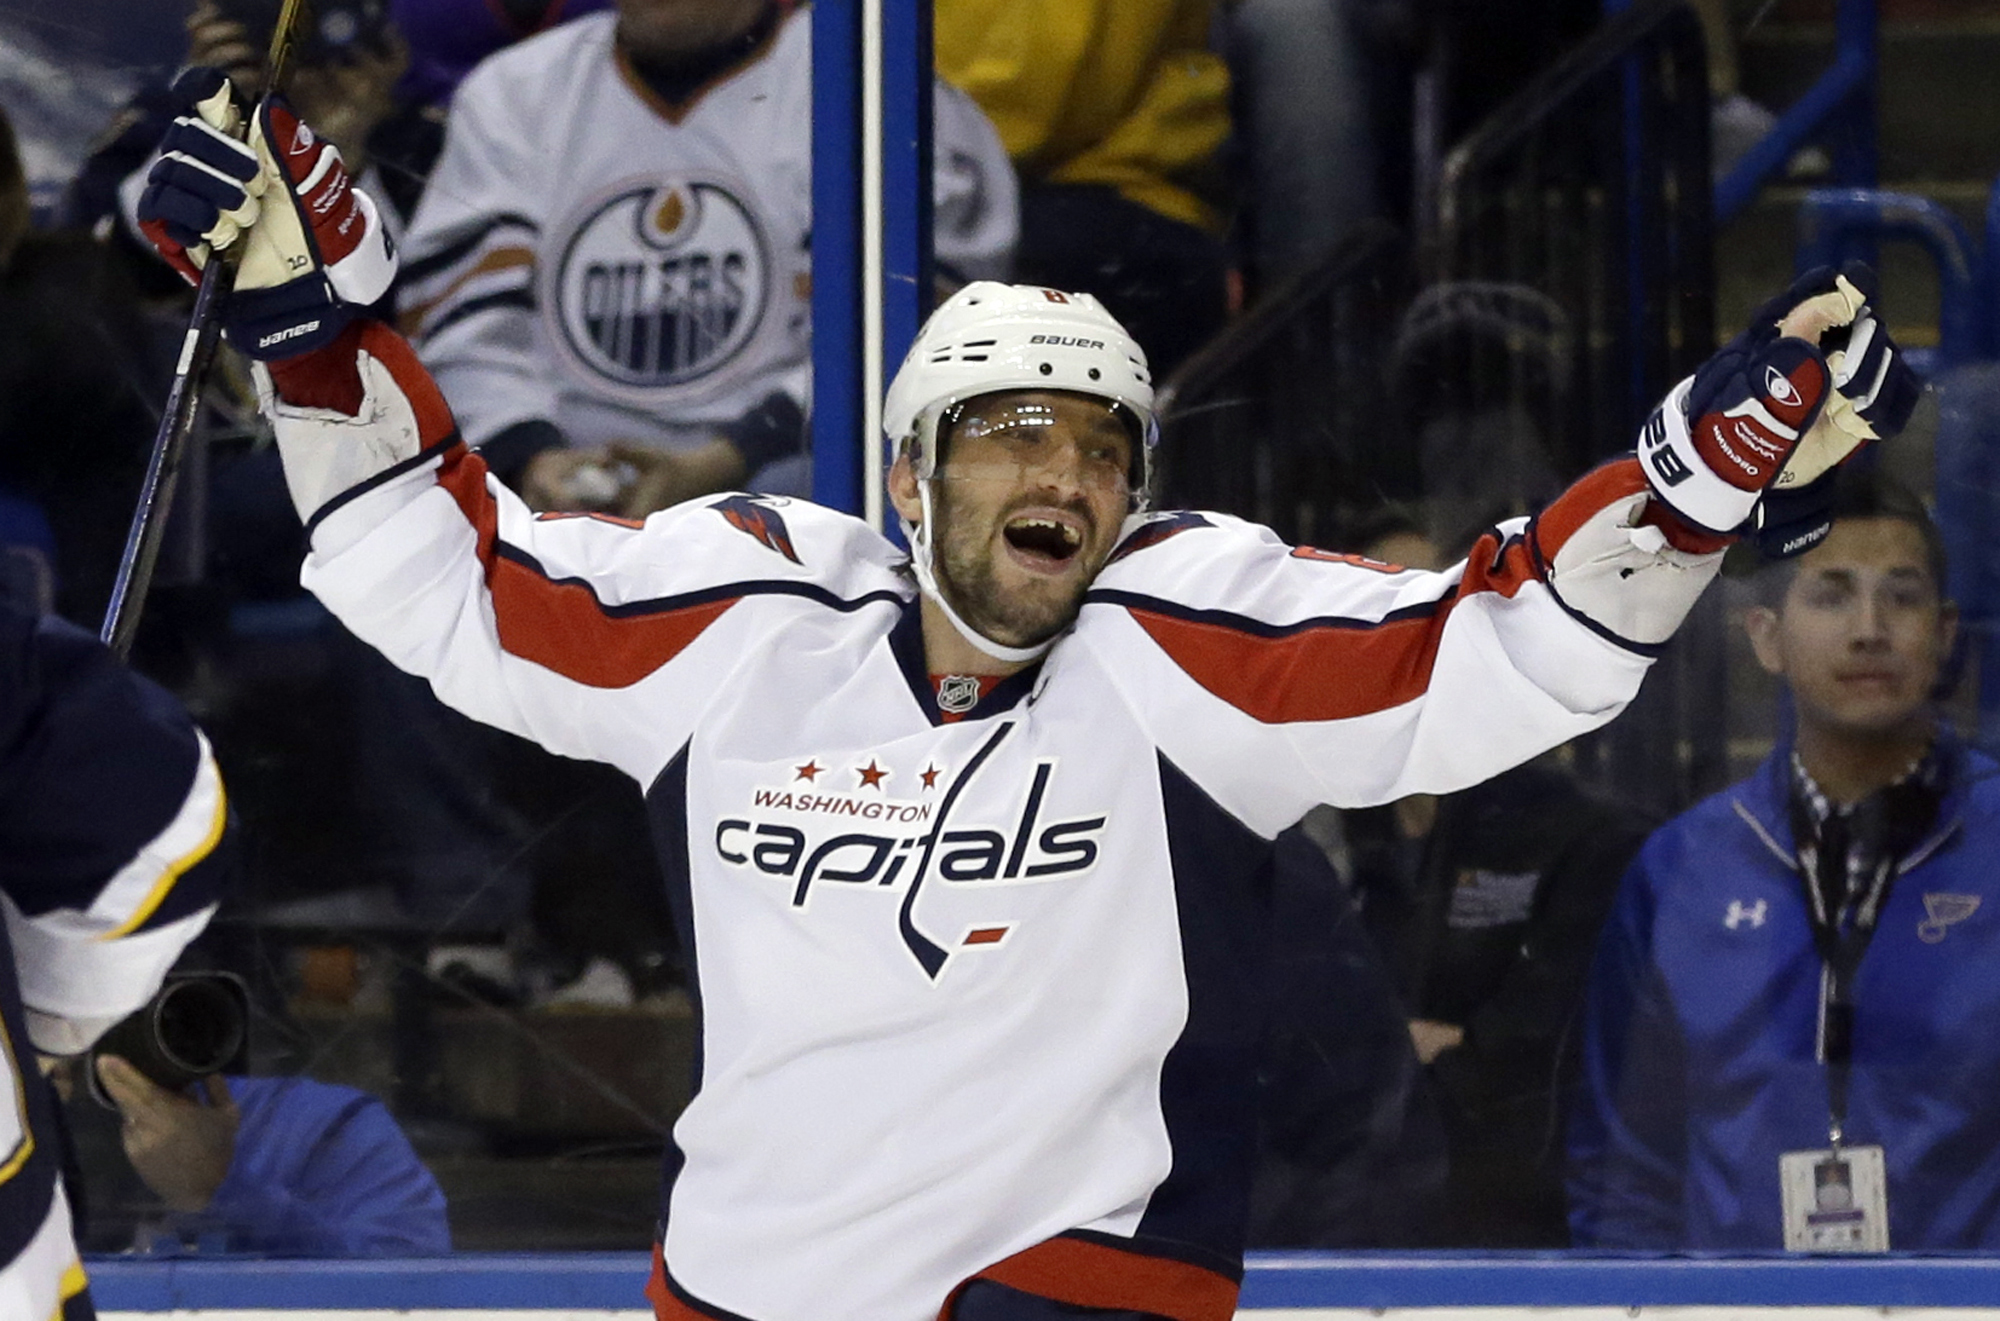 FILE - In this Saturday, April 9, 2016 file photo, Washington Capitals' Alex Ovechkin, of Russia, celebrates after scoring his third goal of an NHL hockey game during the third period against the St. Louis Blues in St. Louis. Expectations have never been